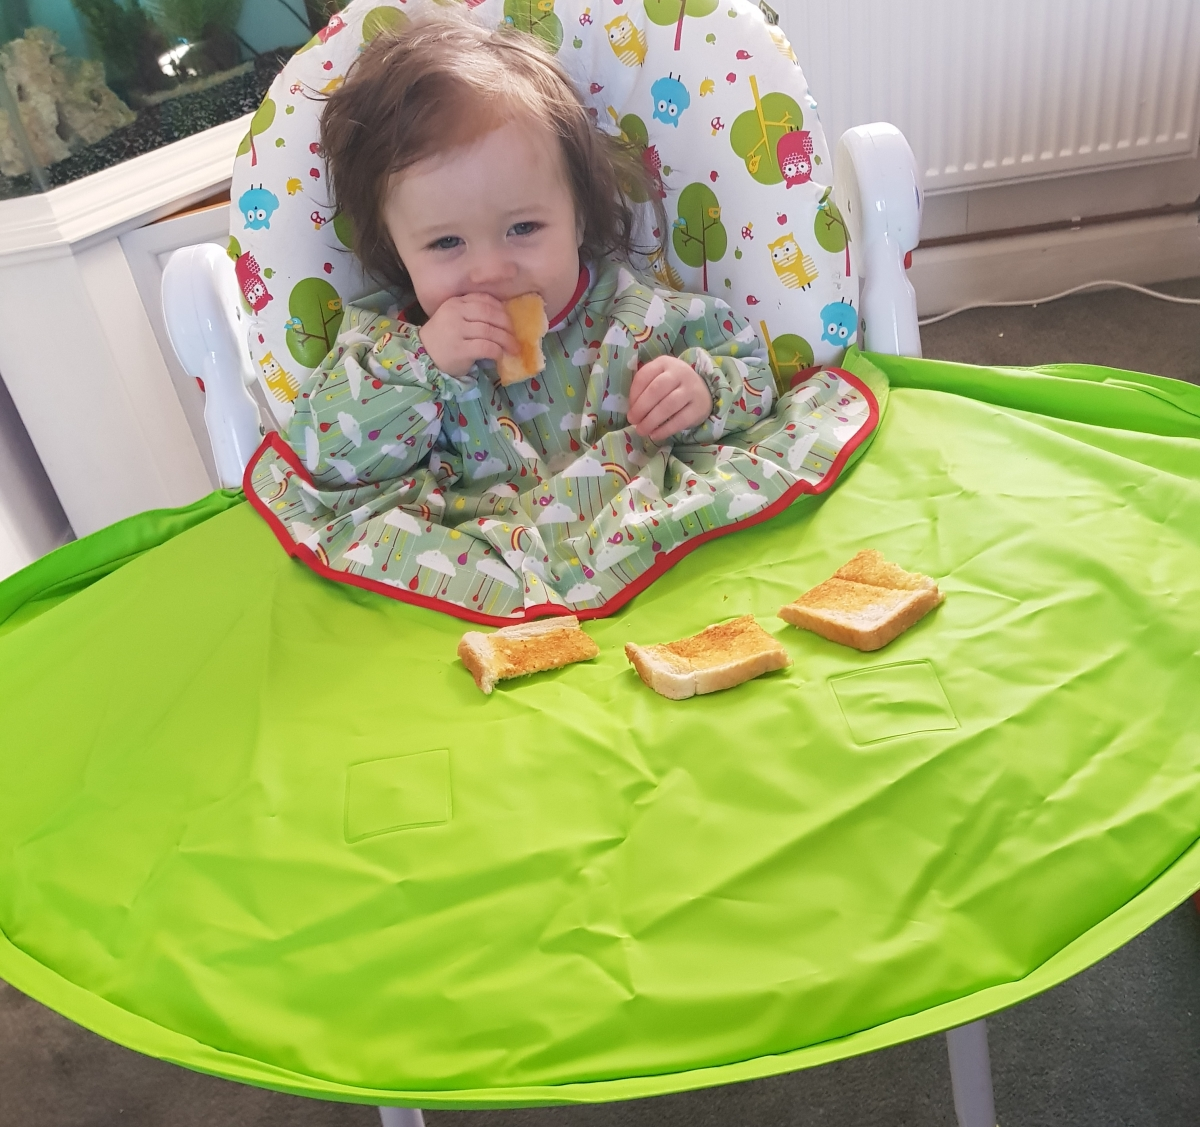 Tidy Tot - Mealtime Saviour?